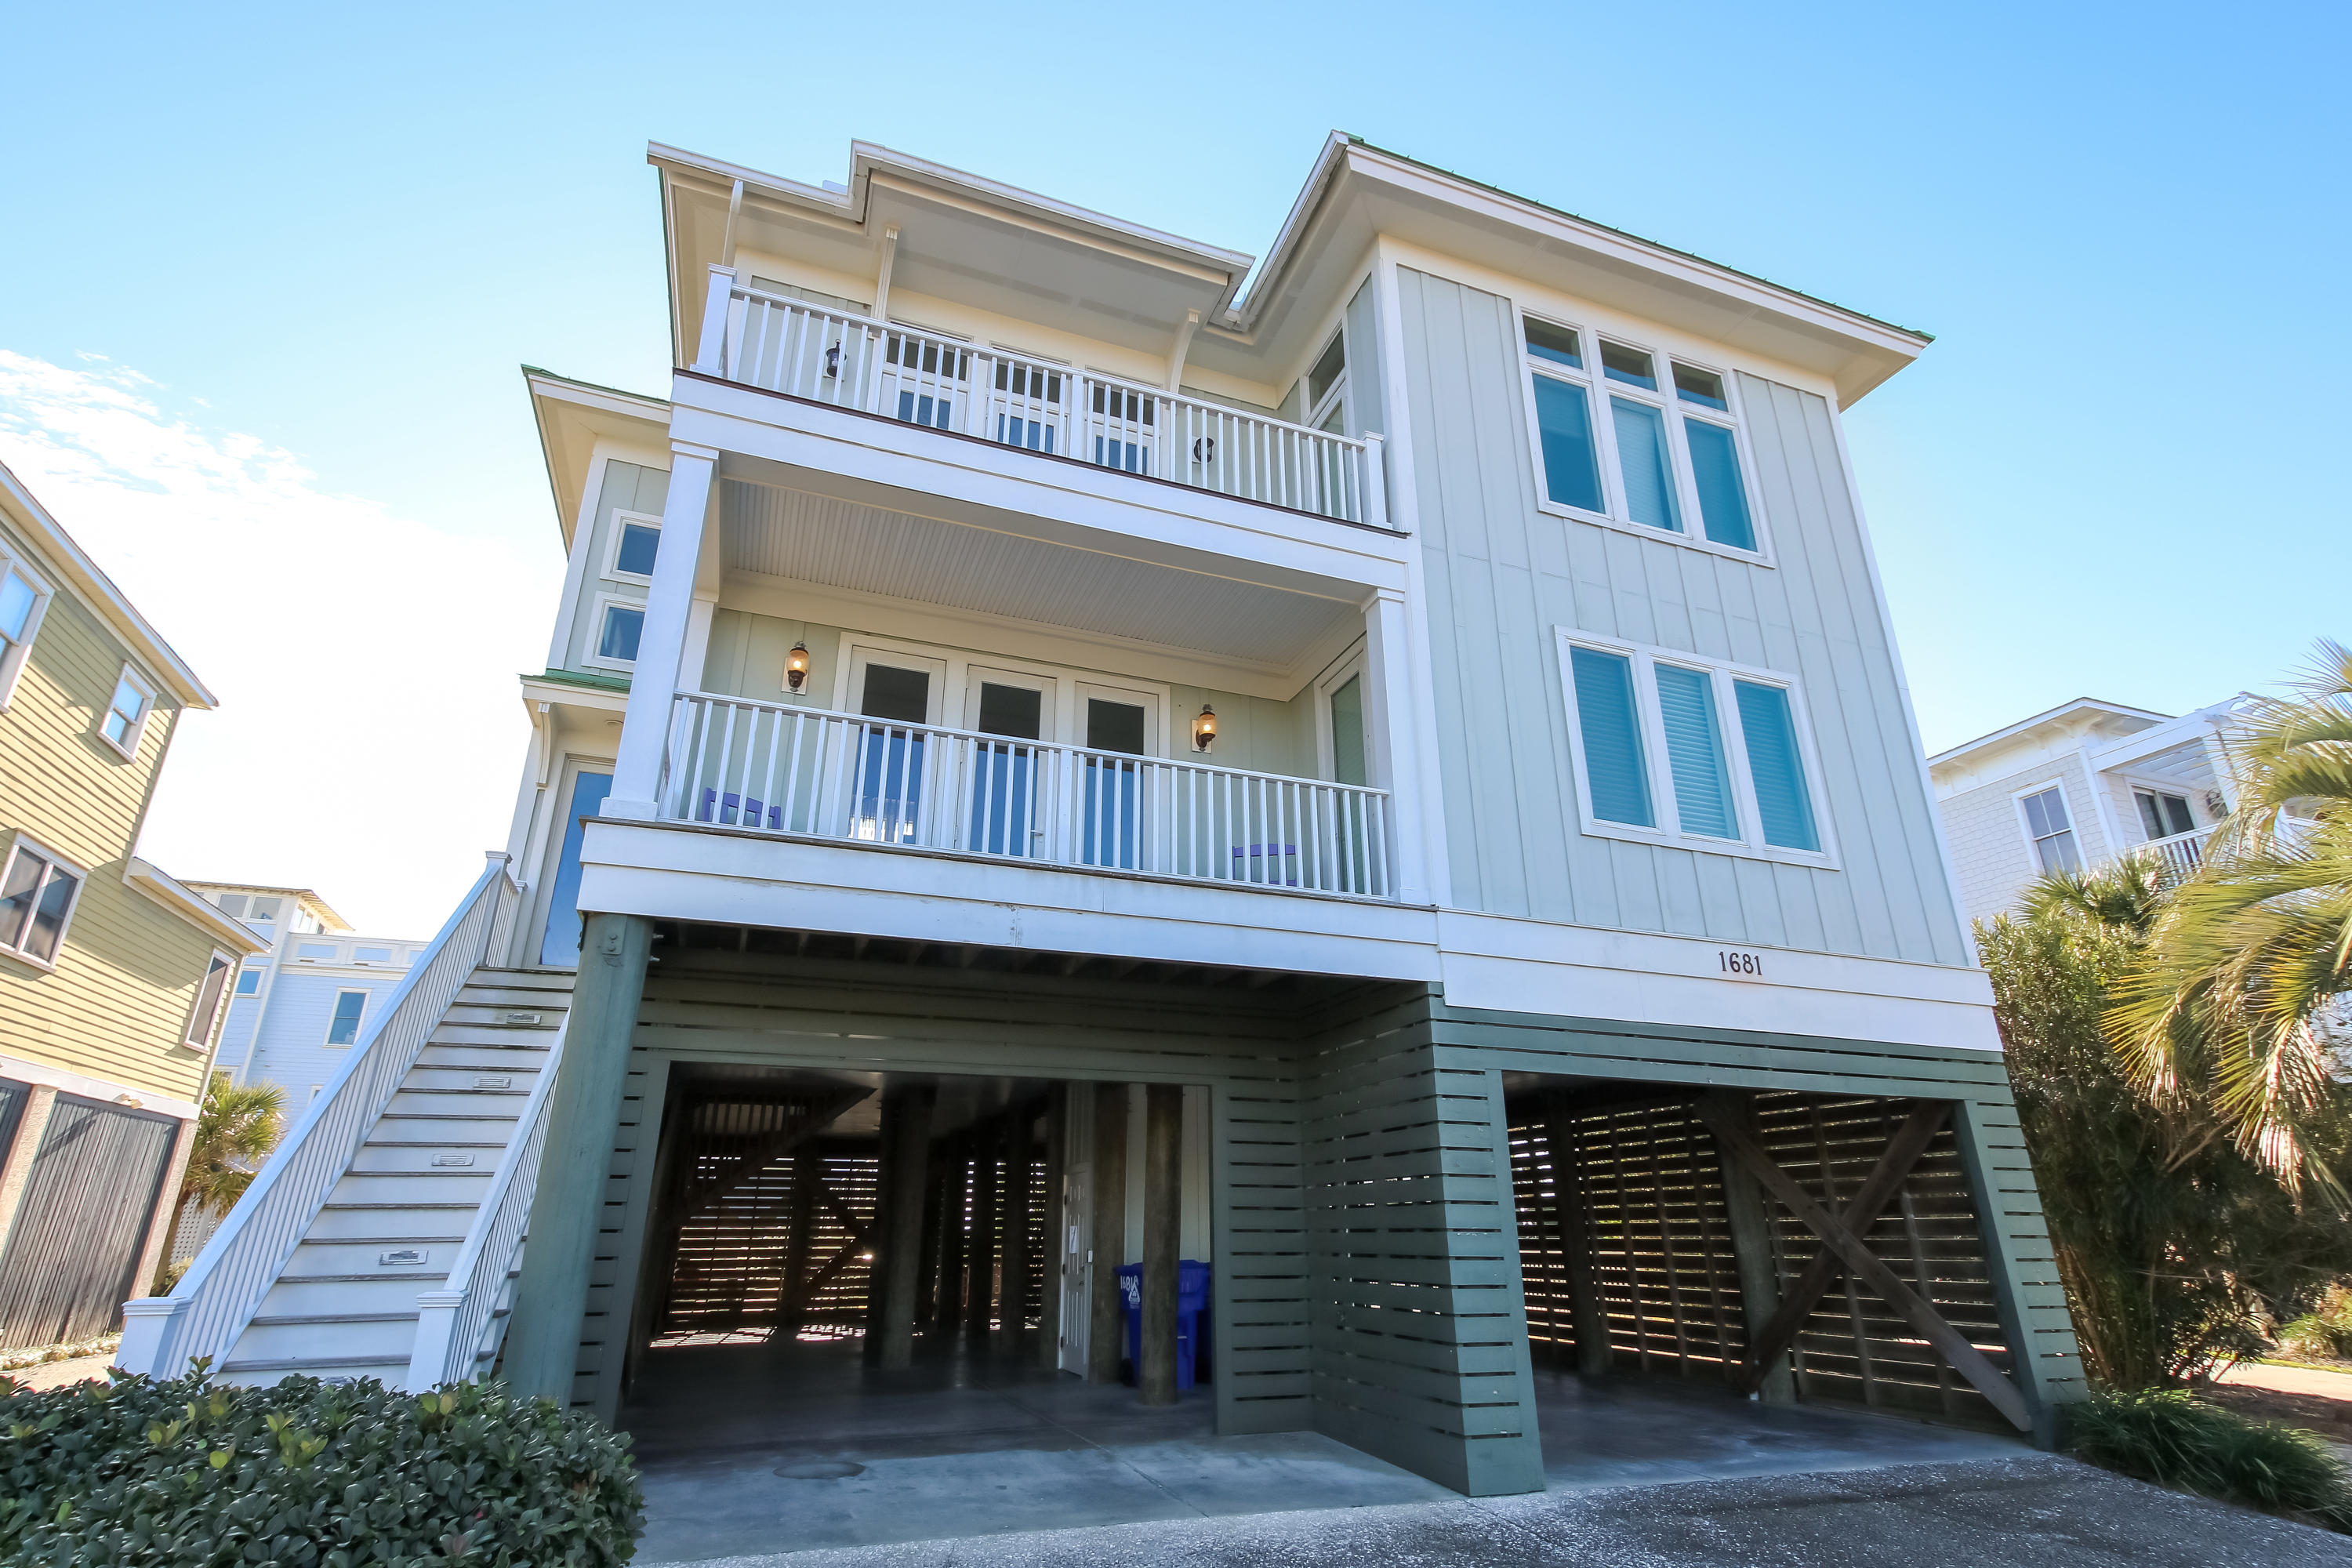 East Folly Beach Shores Homes For Sale - 1681 Ashley A, Folly Beach, SC - 34